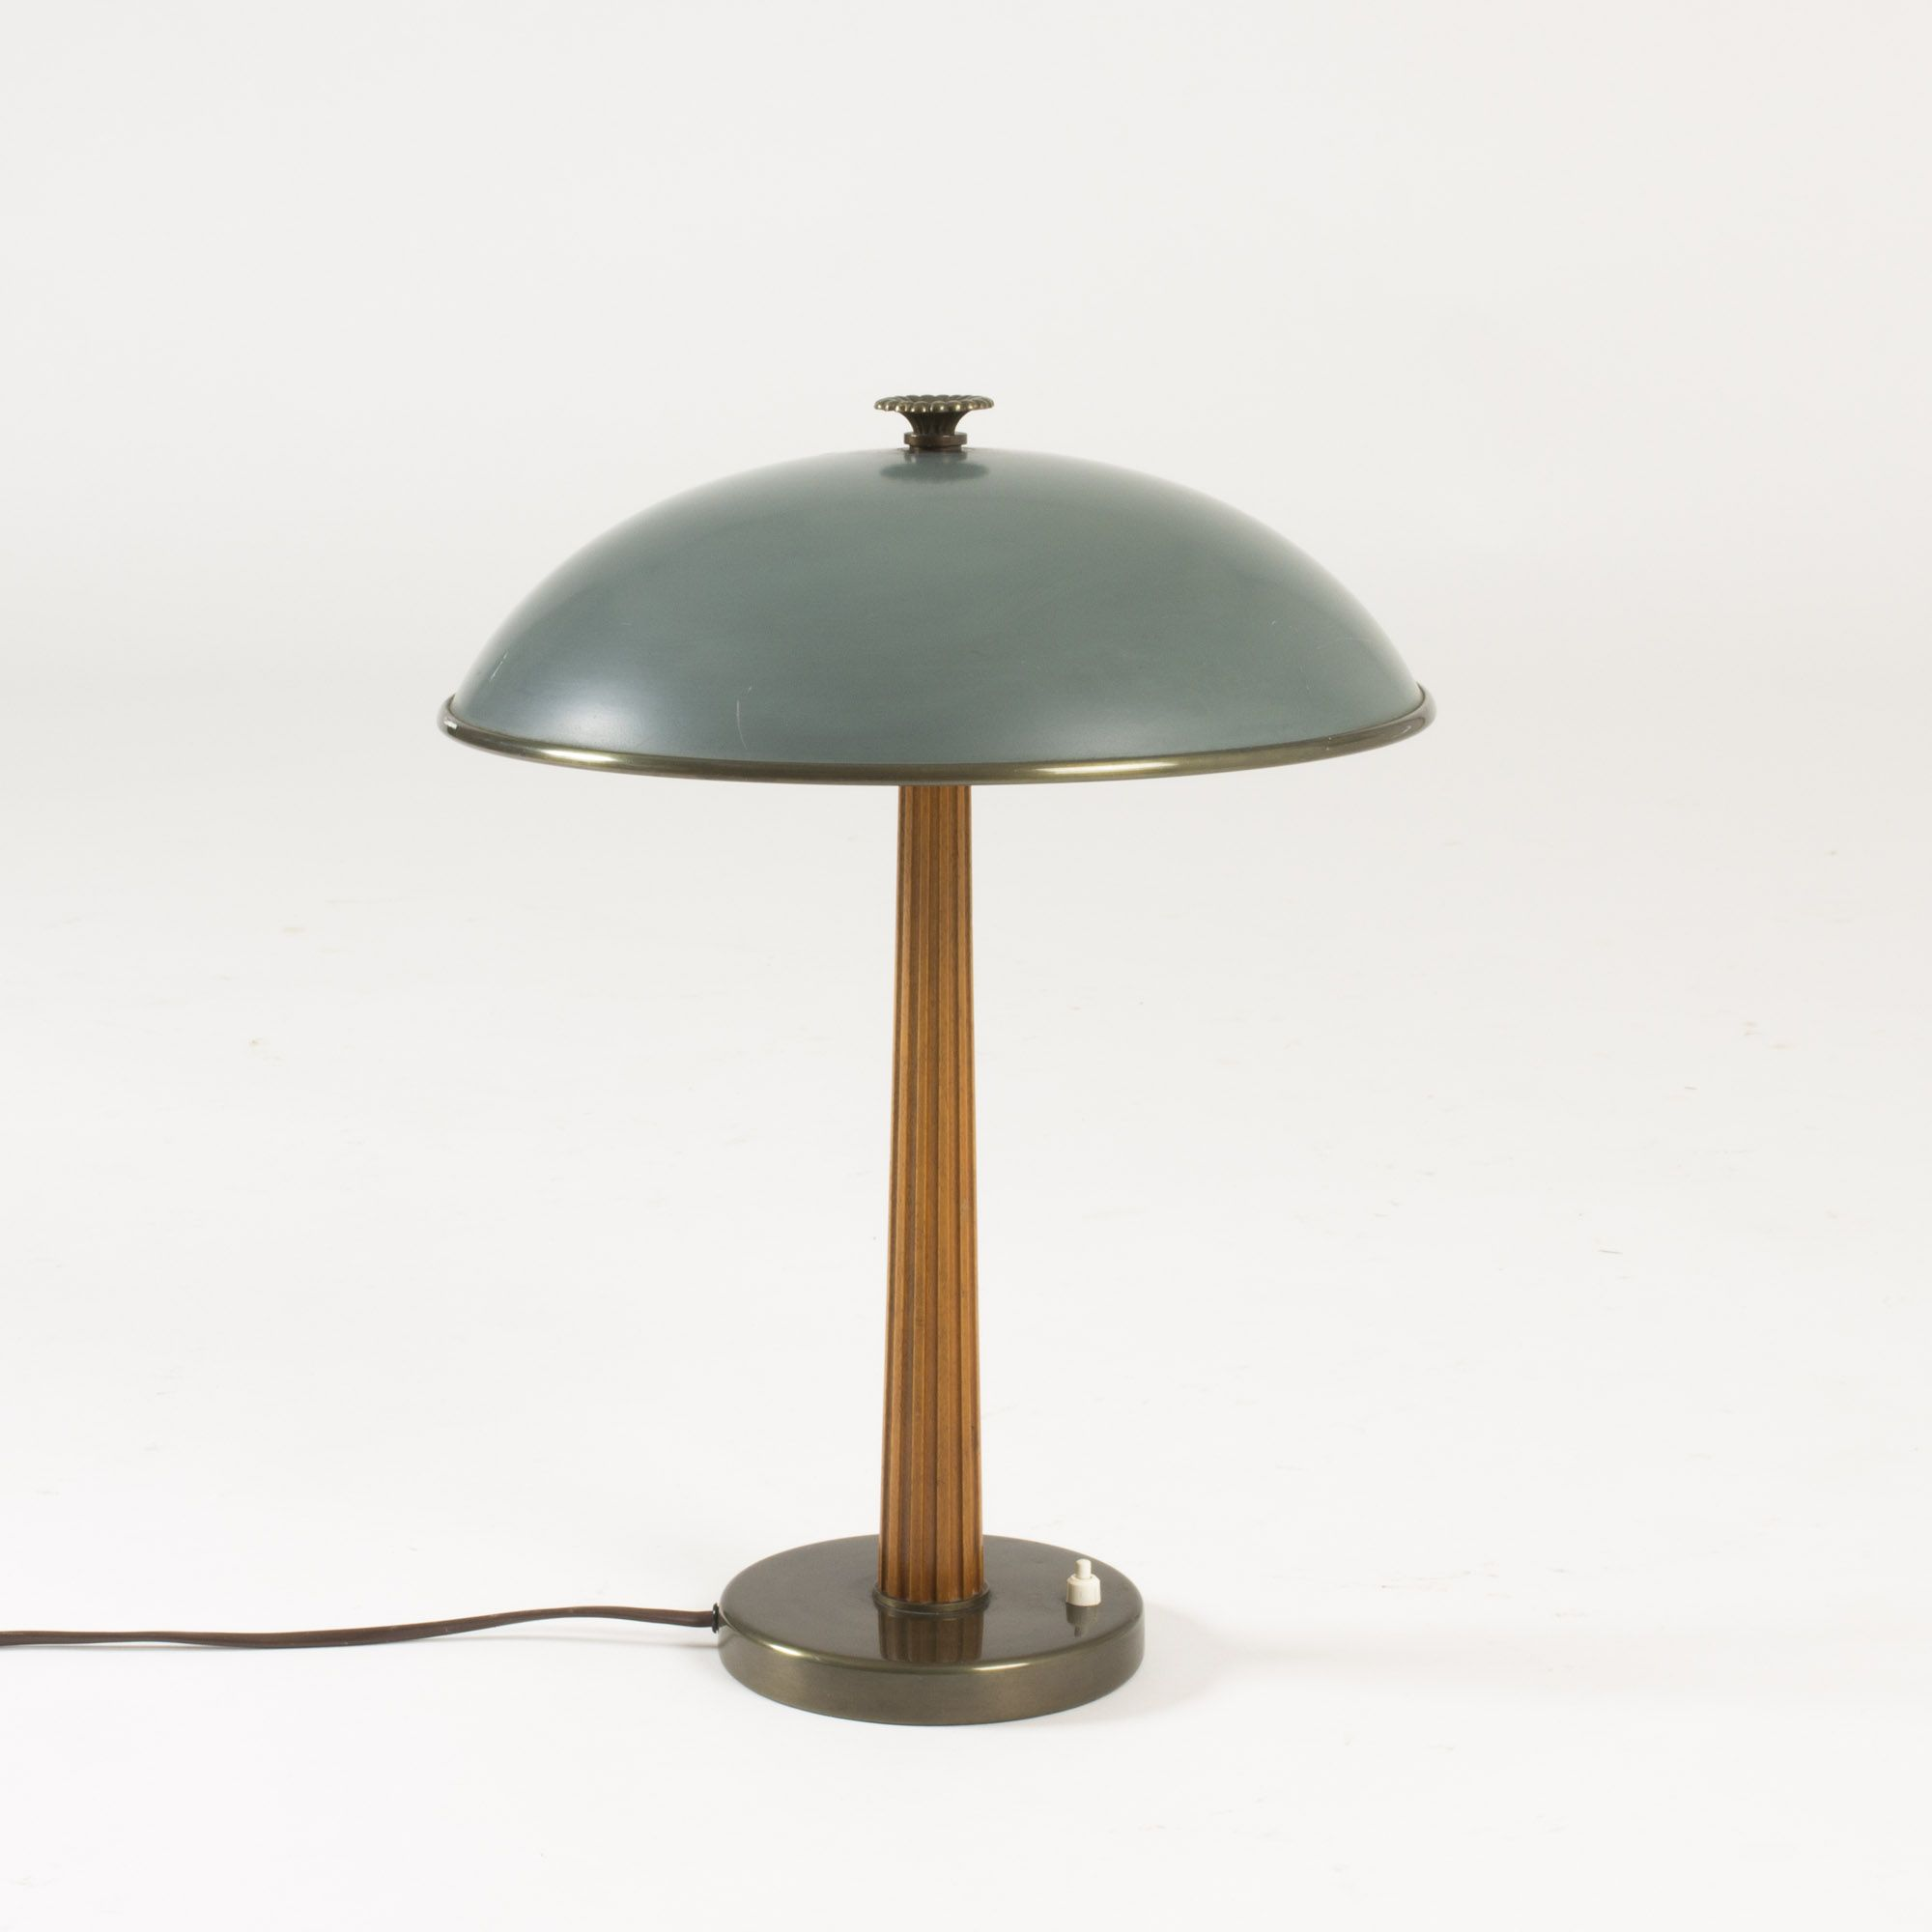 Beautiful Table Lamp From B Hlmarks, With A Brass Base,